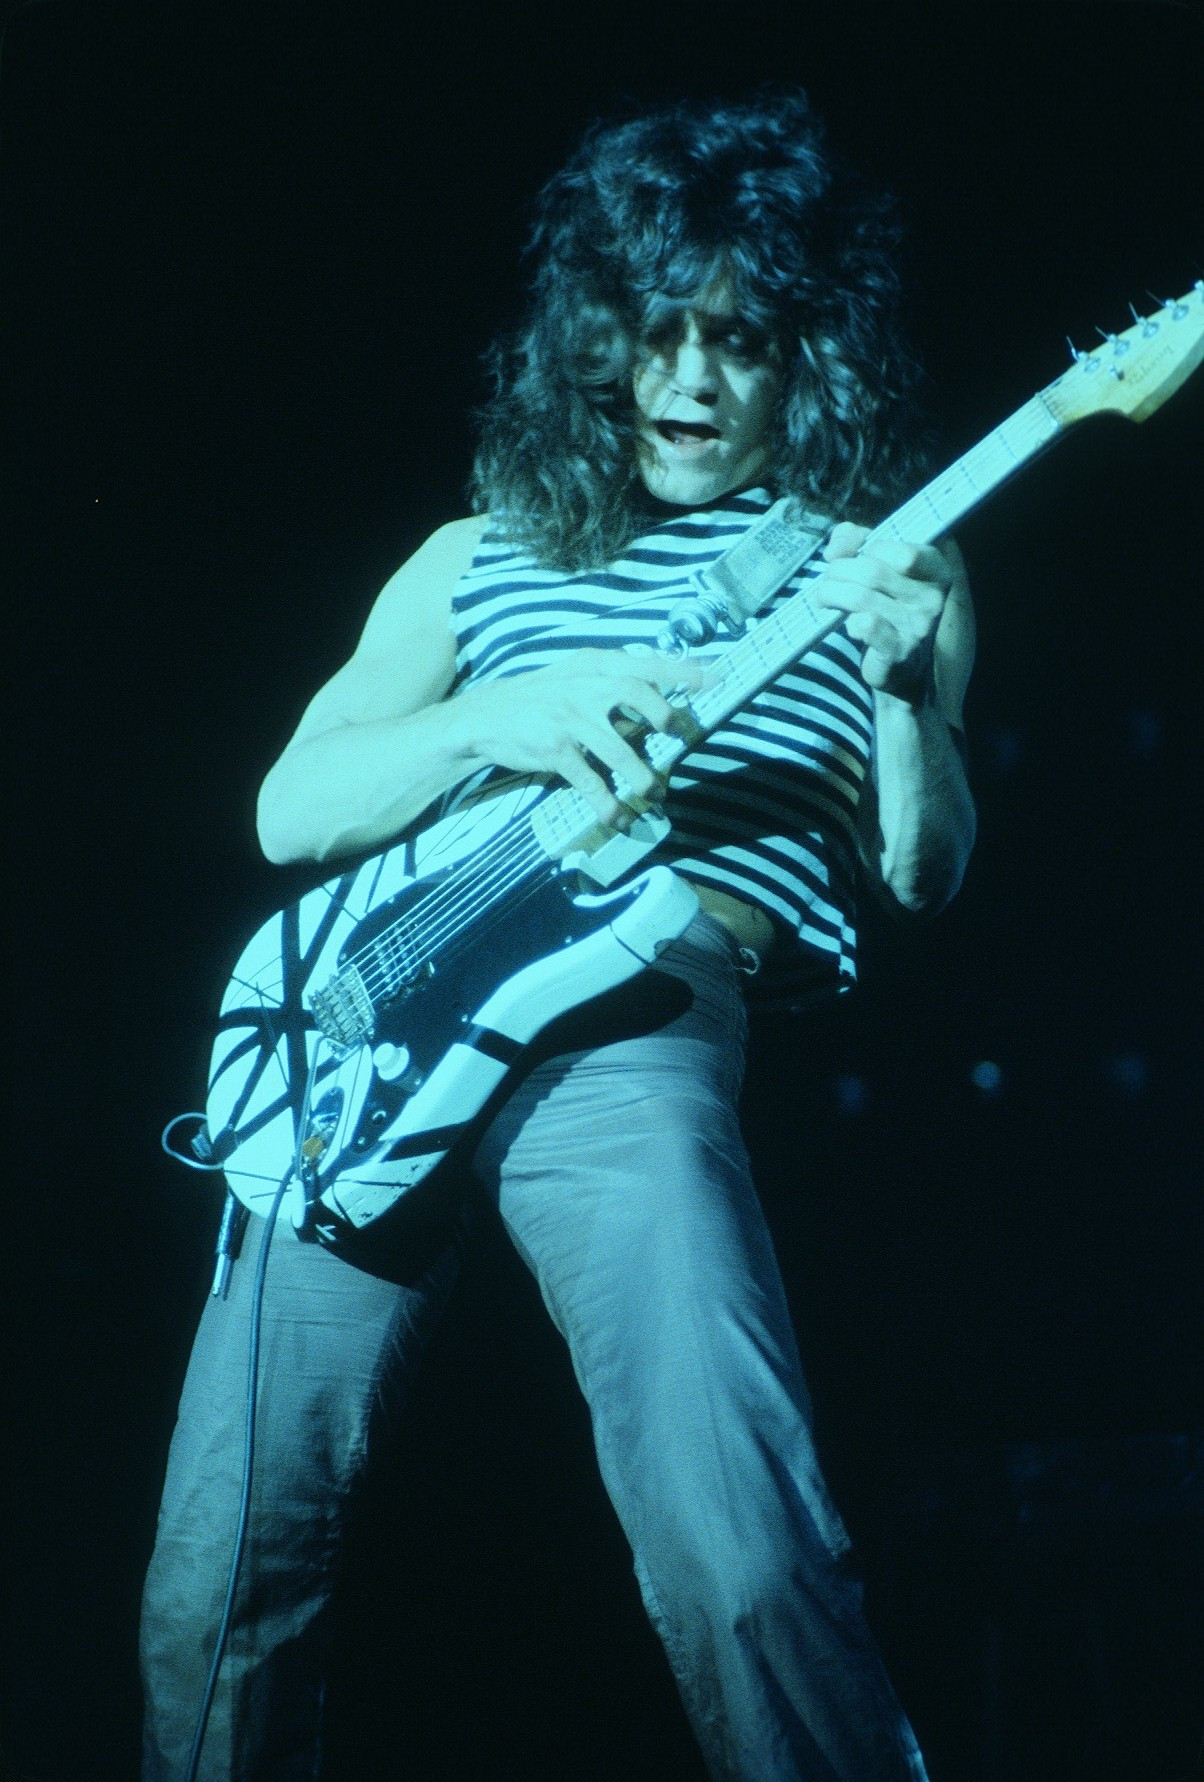 Eddie Van Halen performing at the New Haven Coliseum. Photo by Carl Lender.